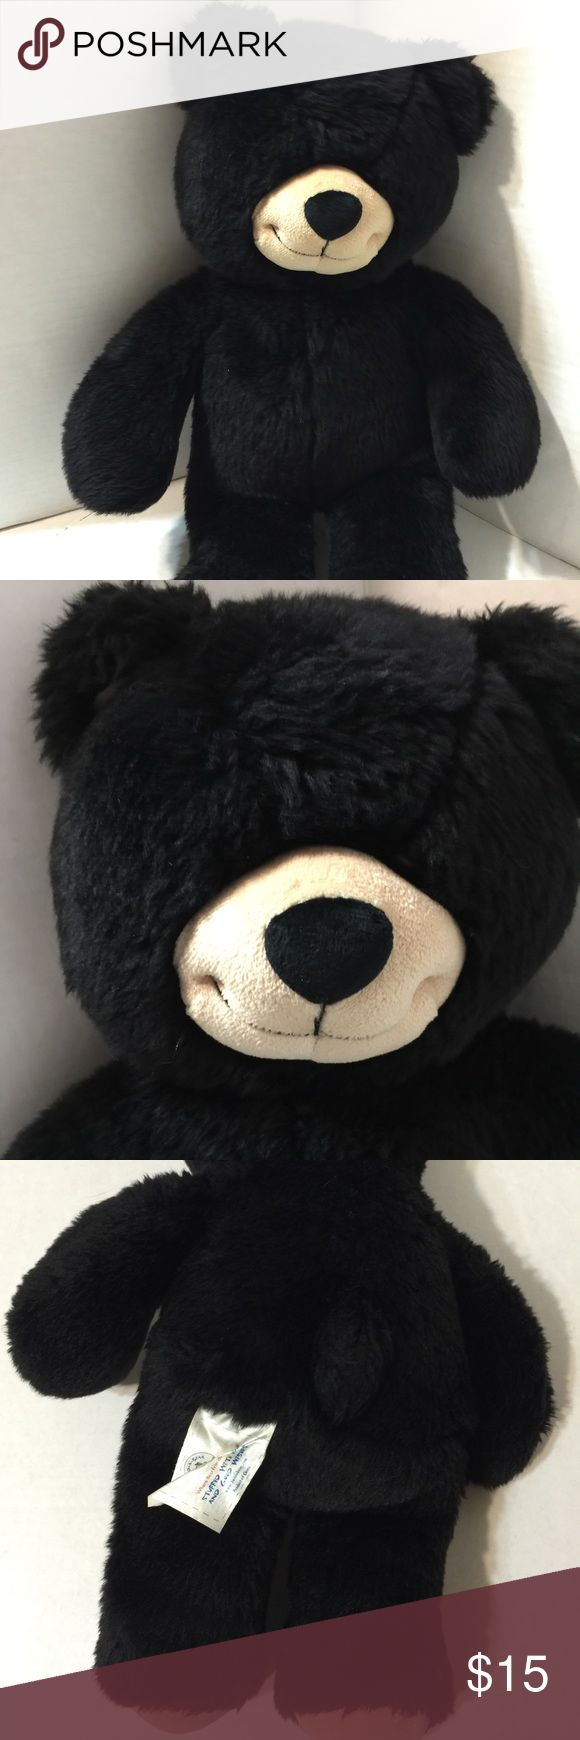 Build A Bear Black Bear Used (box BB21) Build A Bear Black Bear Used (box BB21). Used but in good condition. SHOWS NORMAL WEAR AND TEAR   SEE PICTURES FOR WHATS INCLUDED. WHAT'S IS IN THE PICTURE IS WHAT YOU WILL BE  RECEIVING. Build A Bear Other